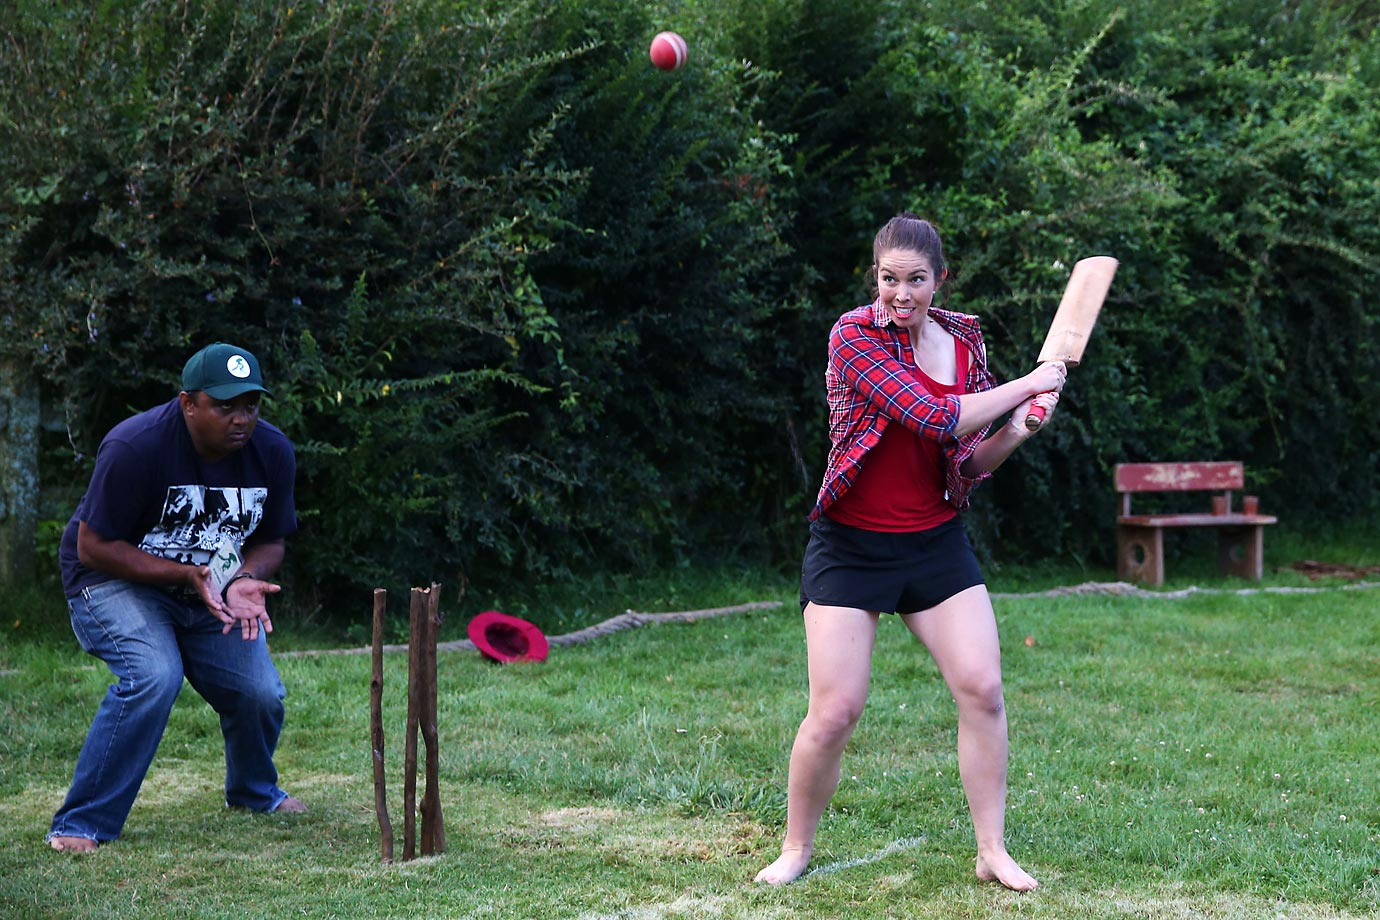 BMX racer Sarah Walker plays a shot during a backyard cricket match, captained by Kiwi cricket greats Sir Richard Hadlee and Stephen Fleming, - under the famed 'party tree' at Hobbiton movie set.